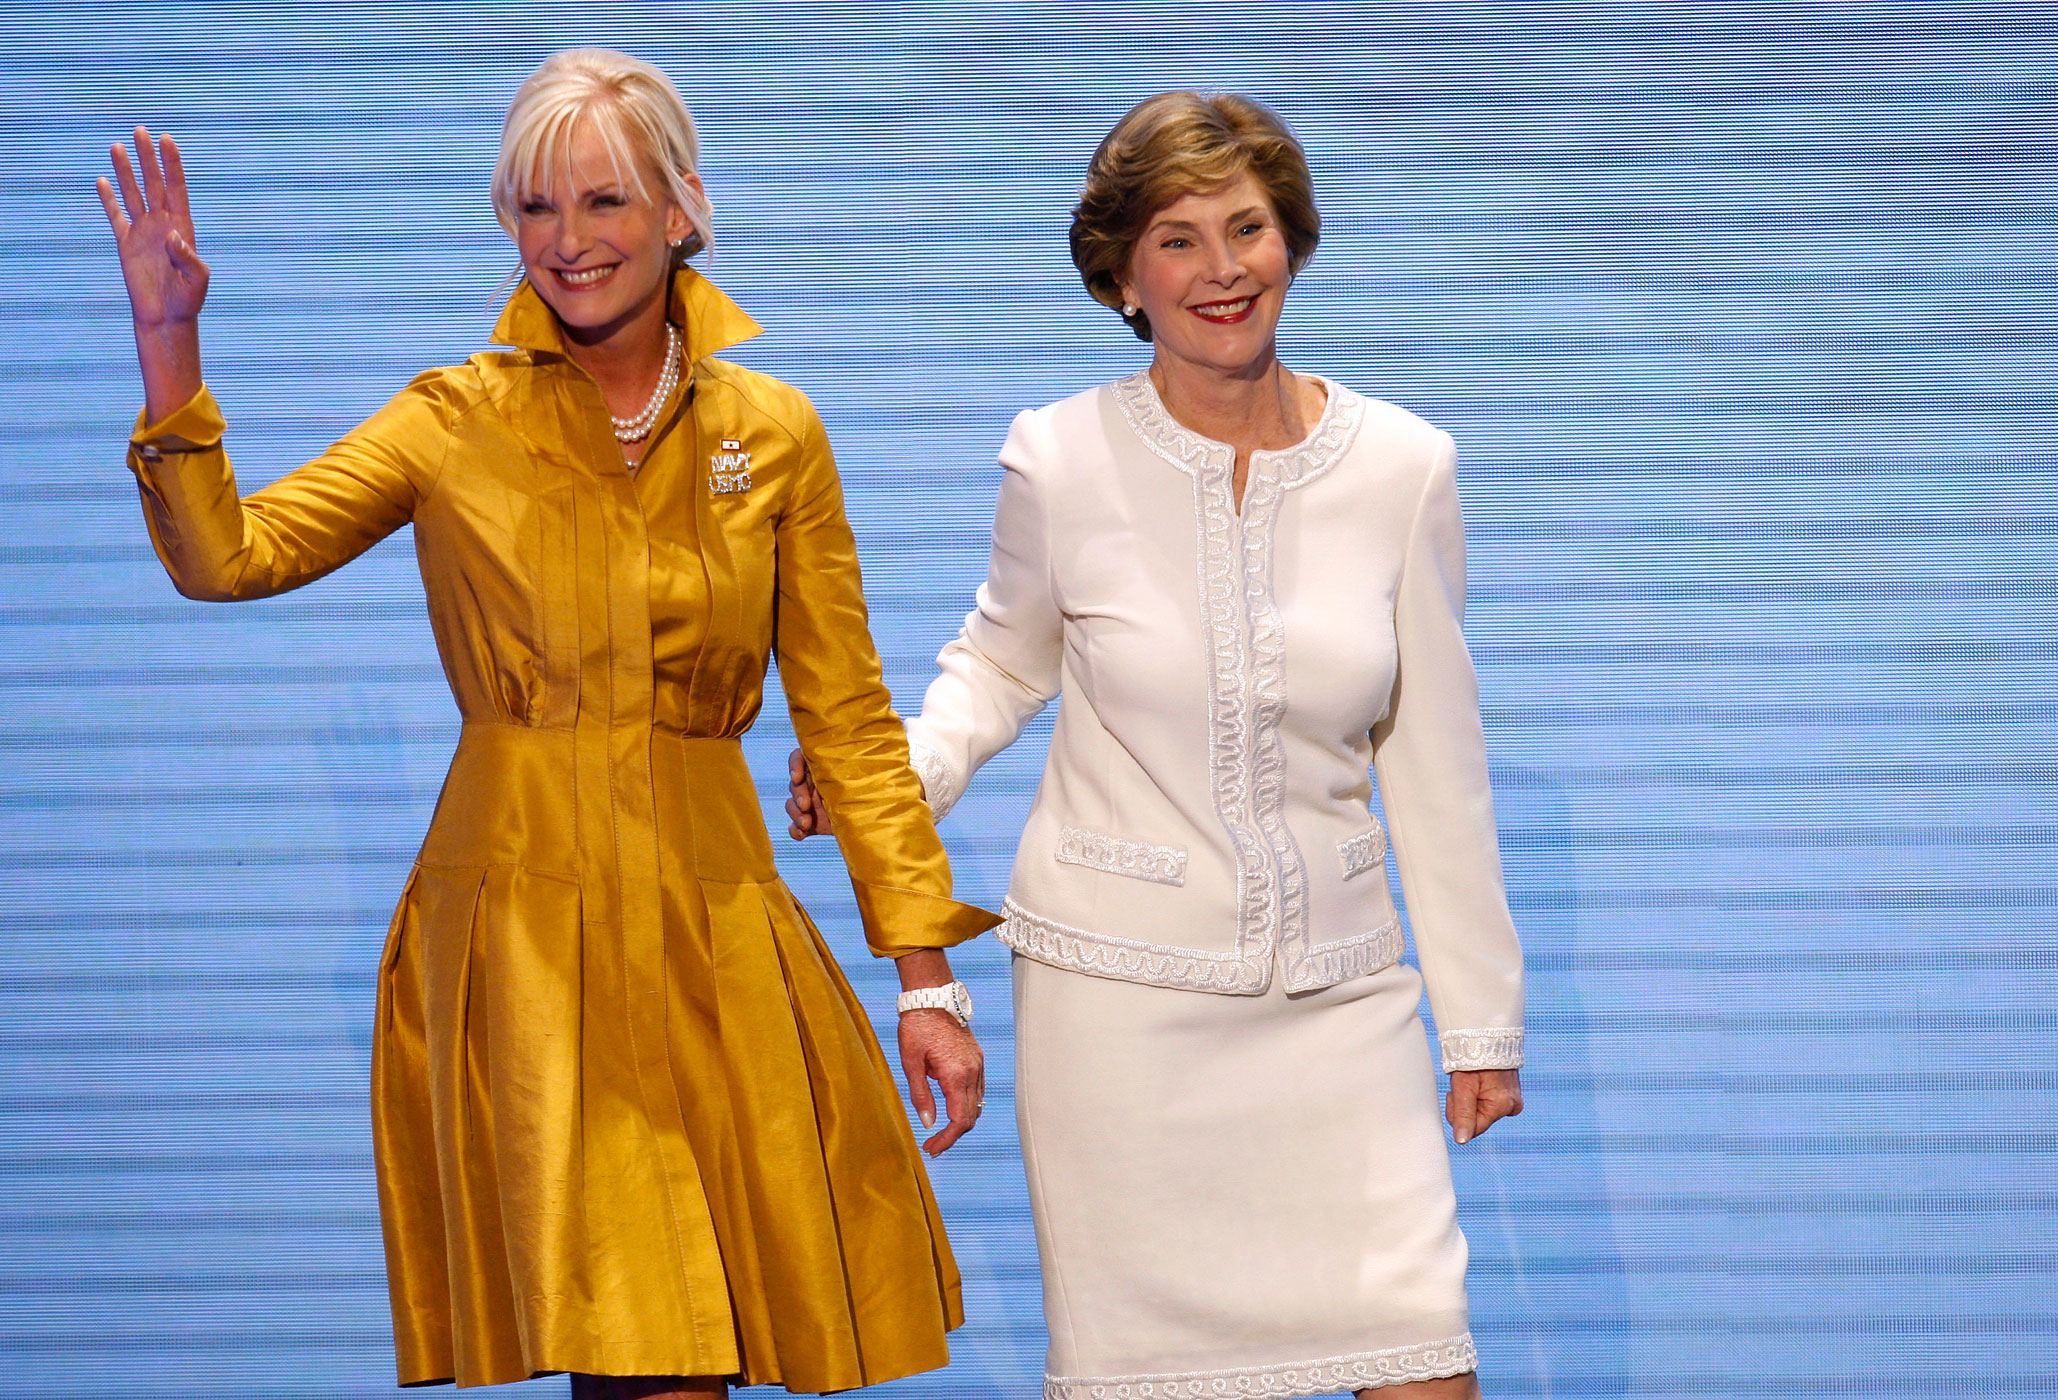 Cindy McCain and first lady Laura Bush both wear Oscar de la Renta  to the 2008 Republican National Convention in St. Paul, Minnesota, September 1, 2008.